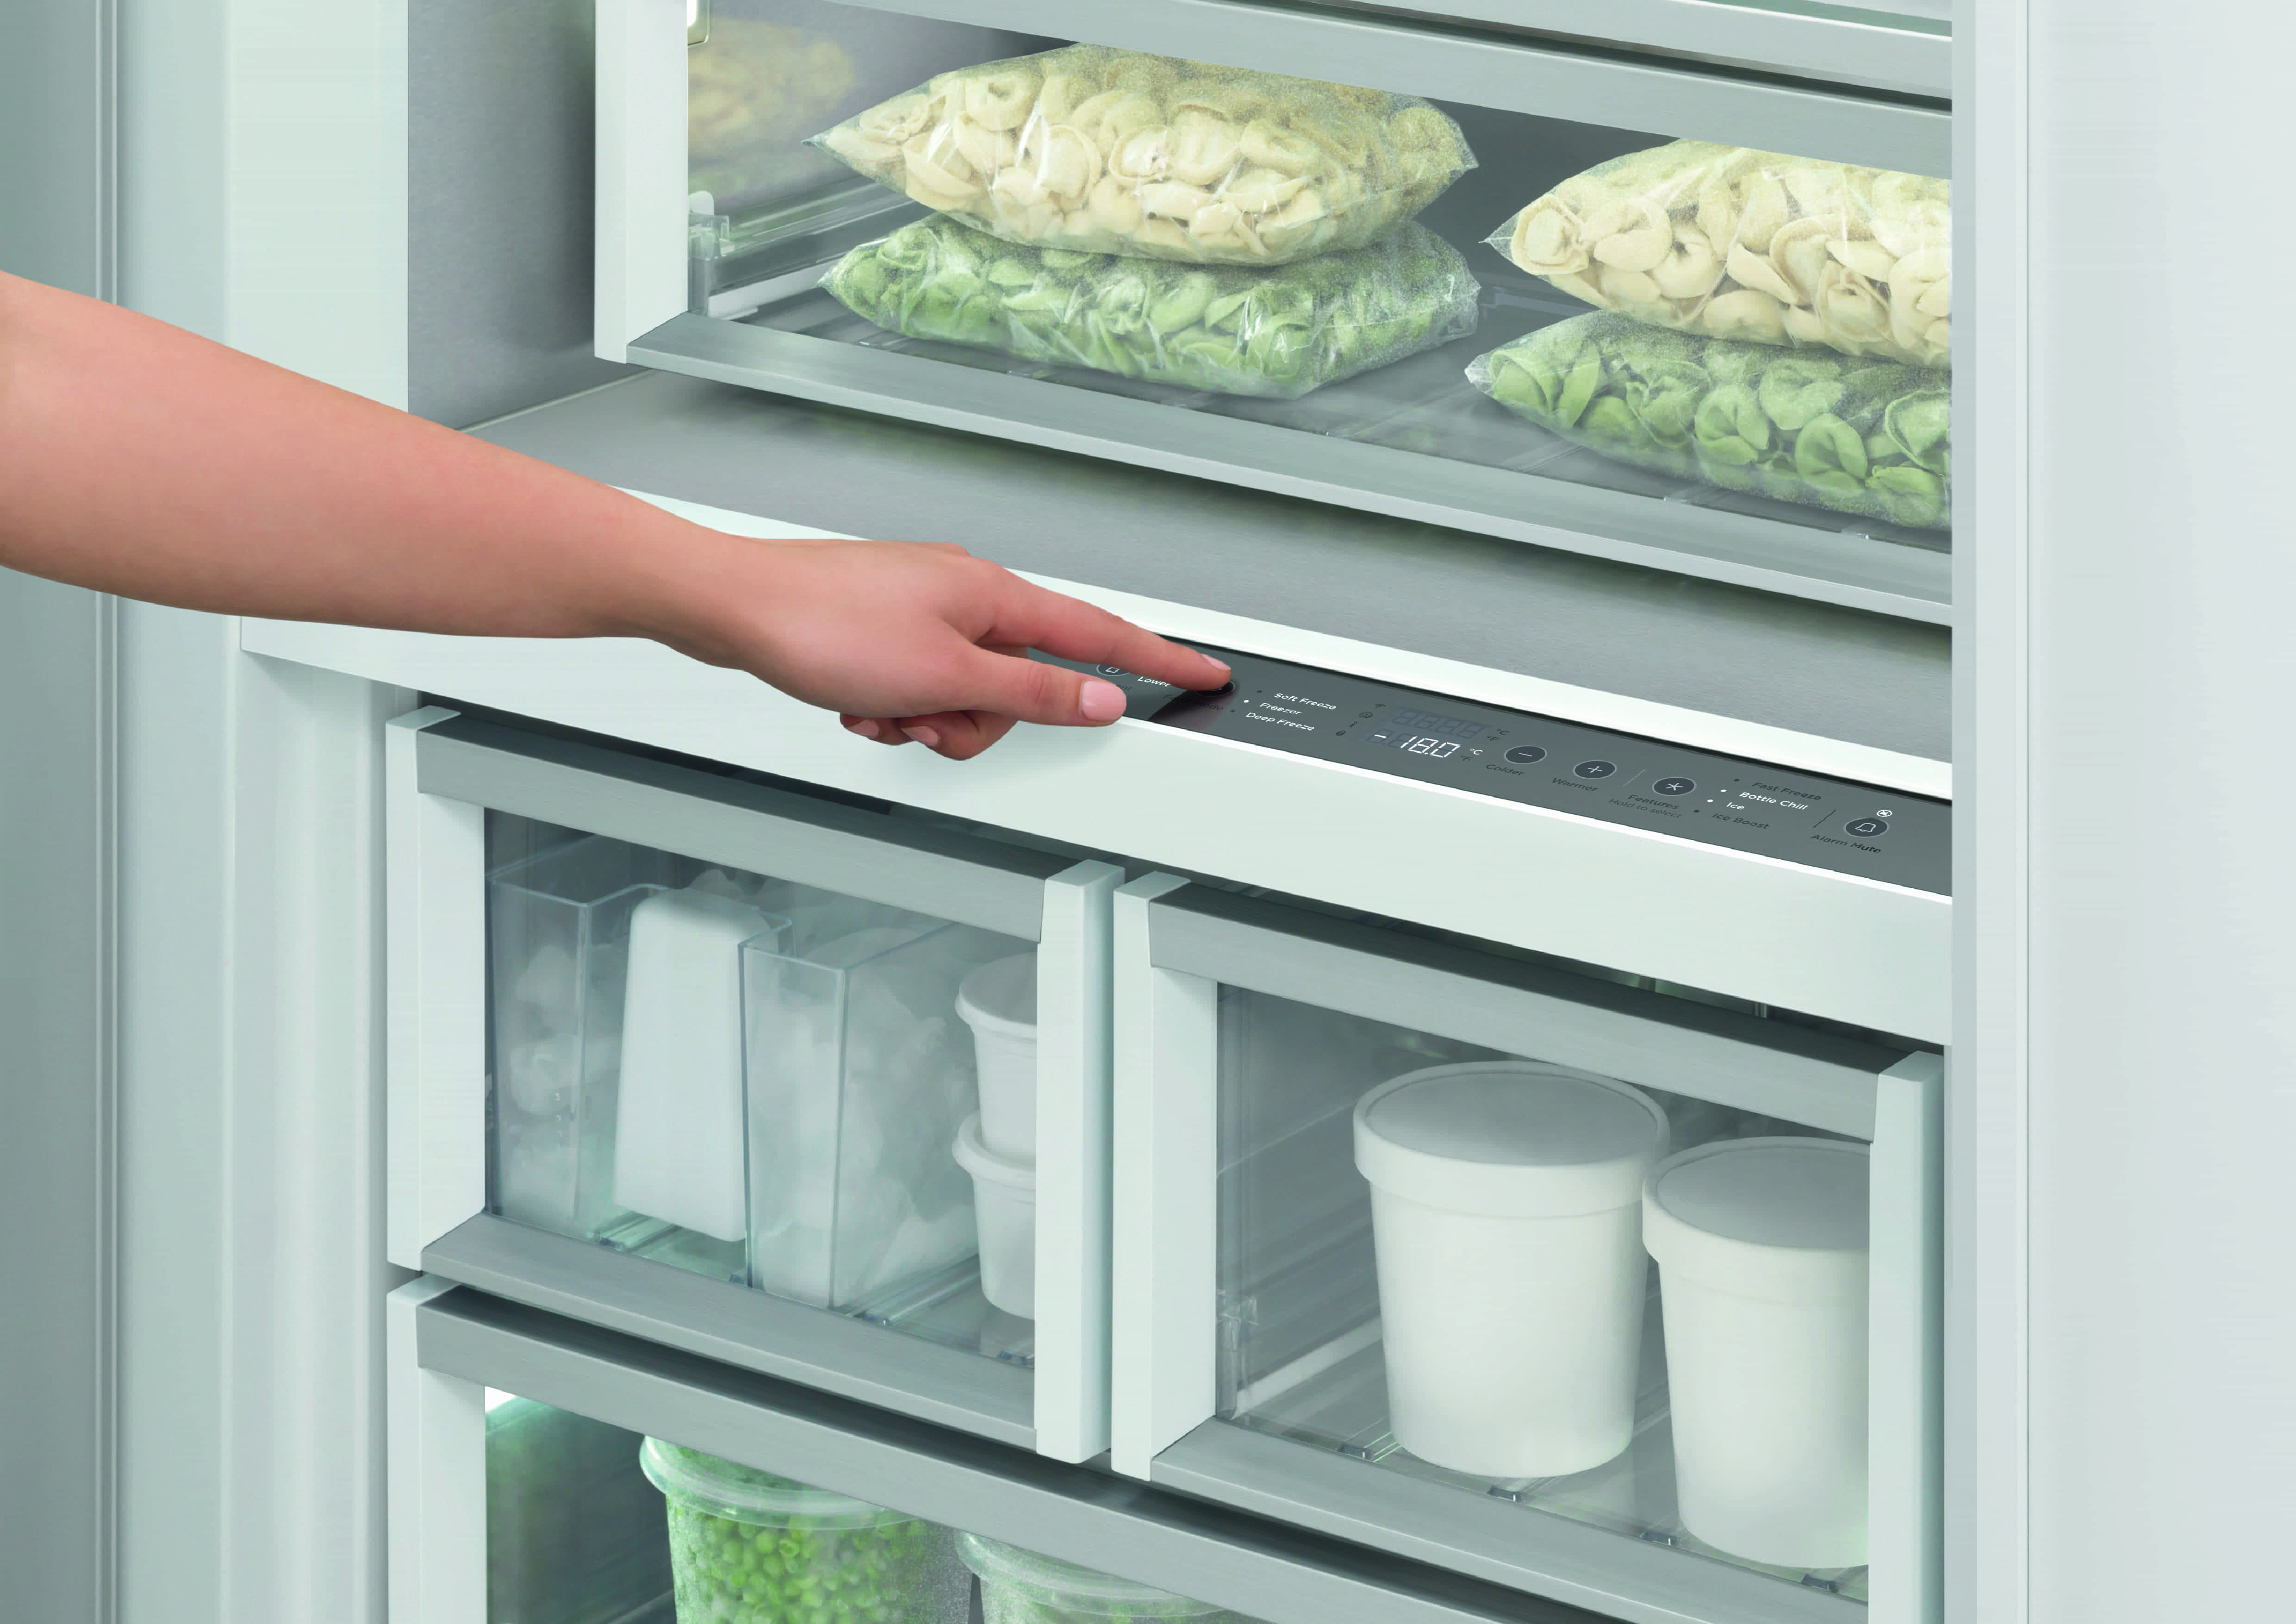 Gallery Of Column Refrigerators And Freezers By Fisher & Paykel Local Australian Design & Interiors Image 12